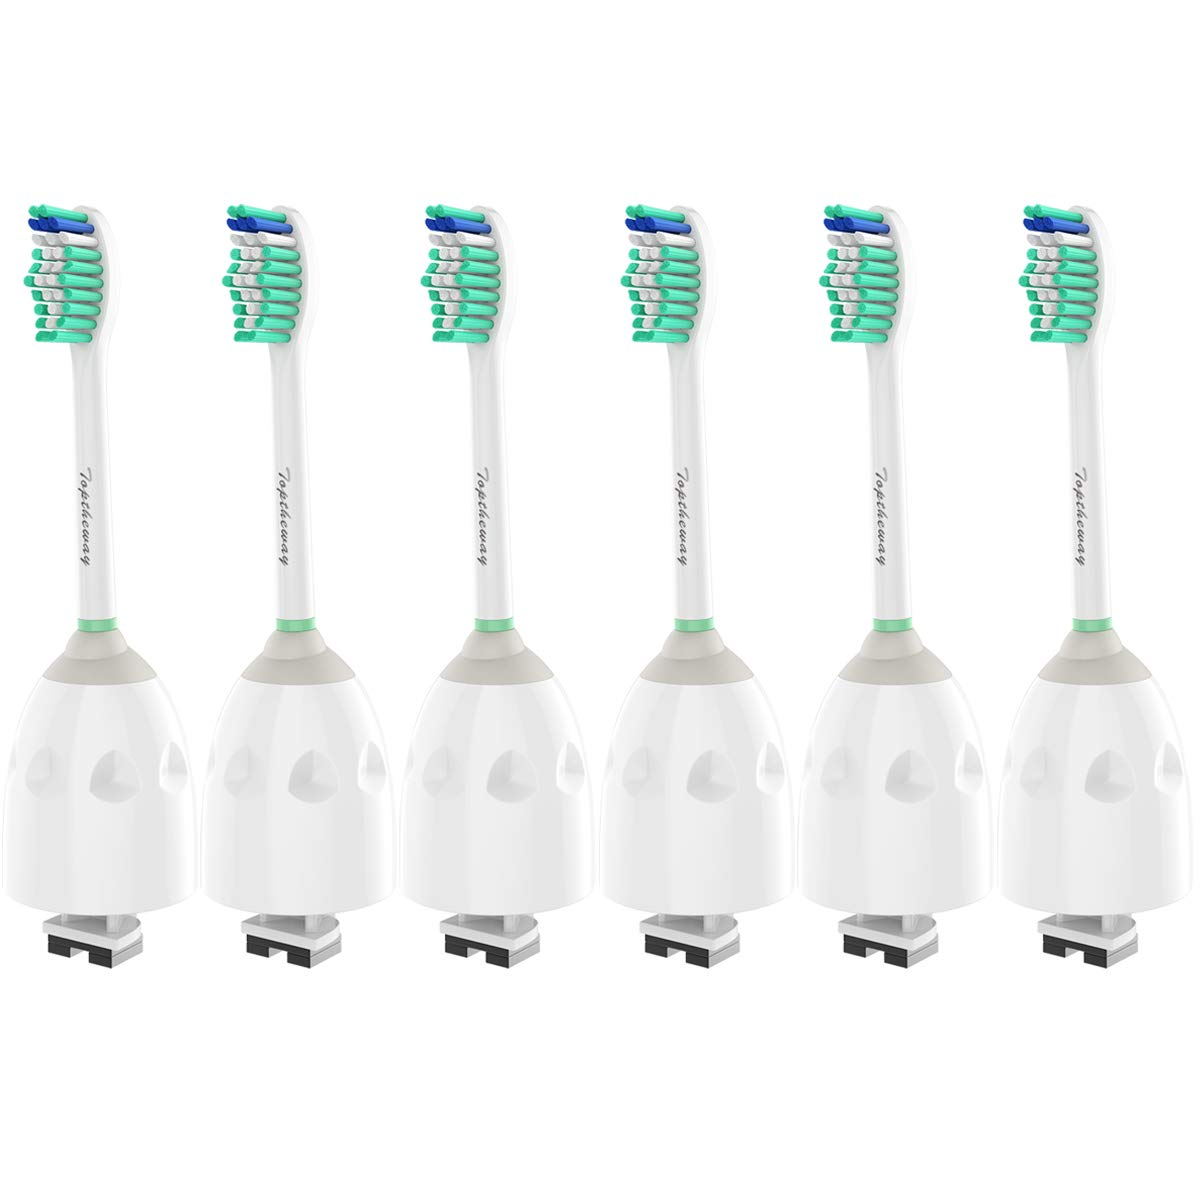 Replacement Brush Heads for Philips Sonicare E-Series Toothbrush HX7022/66, Fit Sonicare Essence, Xtreme, Elite, Advance and CleanCare Screw-On Philips Handles, 6 Pack by Toptheway by Toptheway (Image #2)